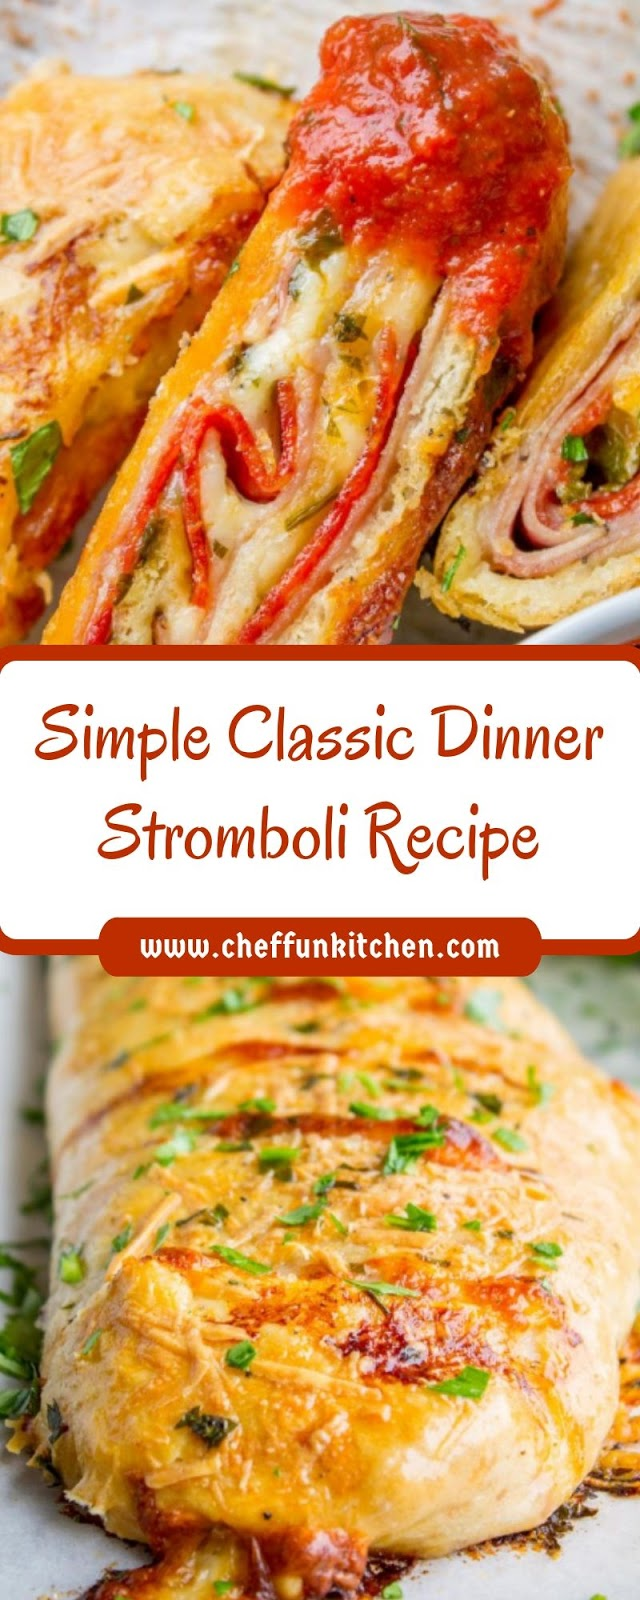 Simple Classic Dinner Stromboli Recipe